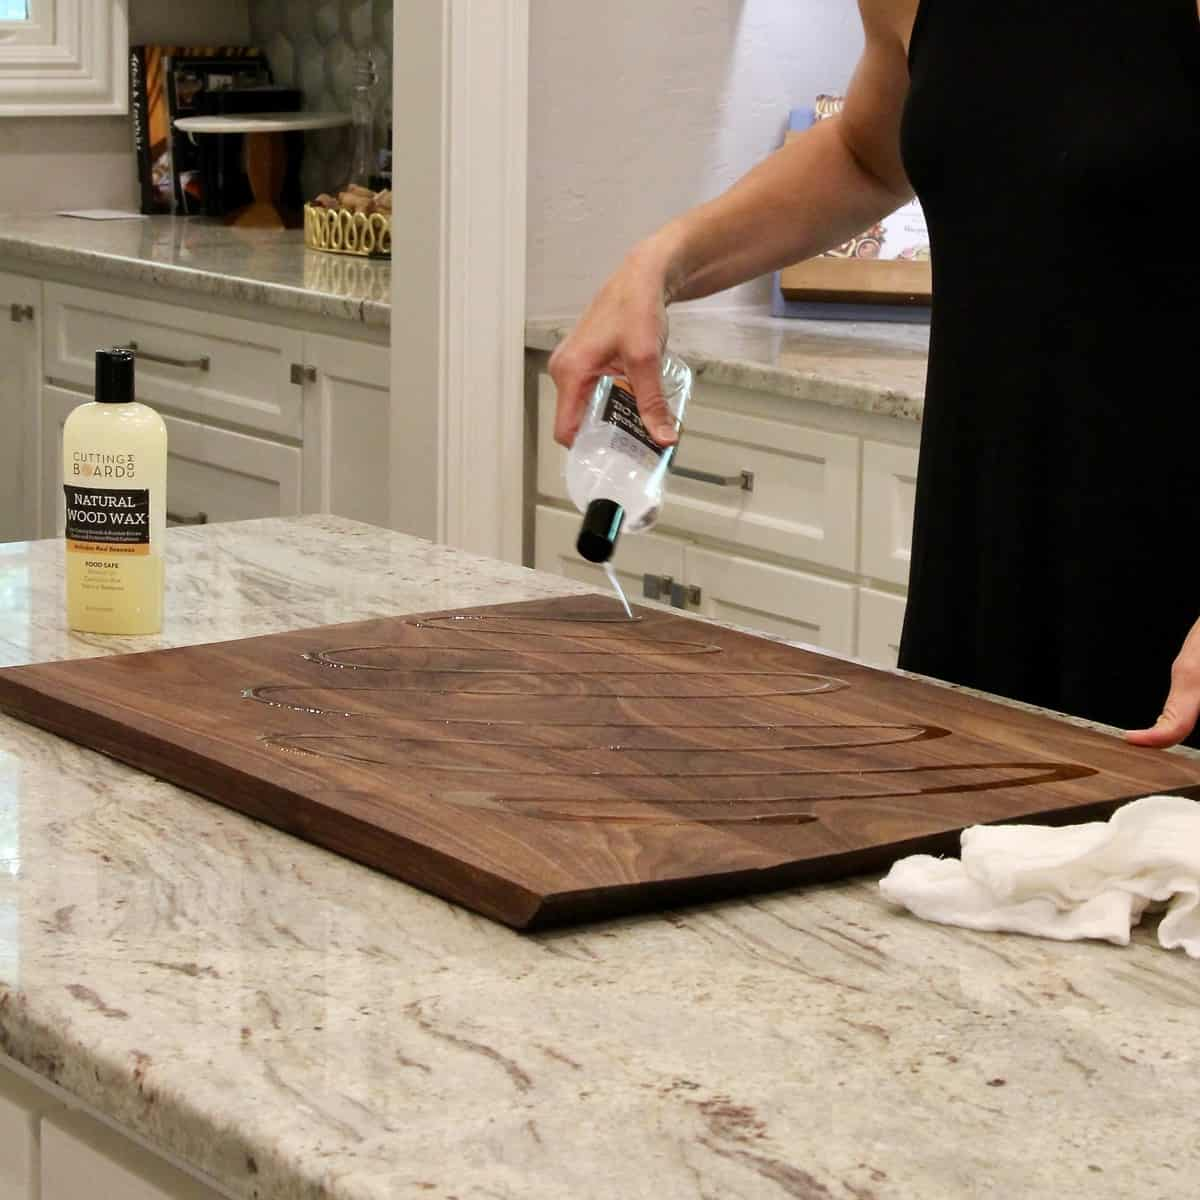 How to Clean and Care for Your Wood Board by The BakerMama